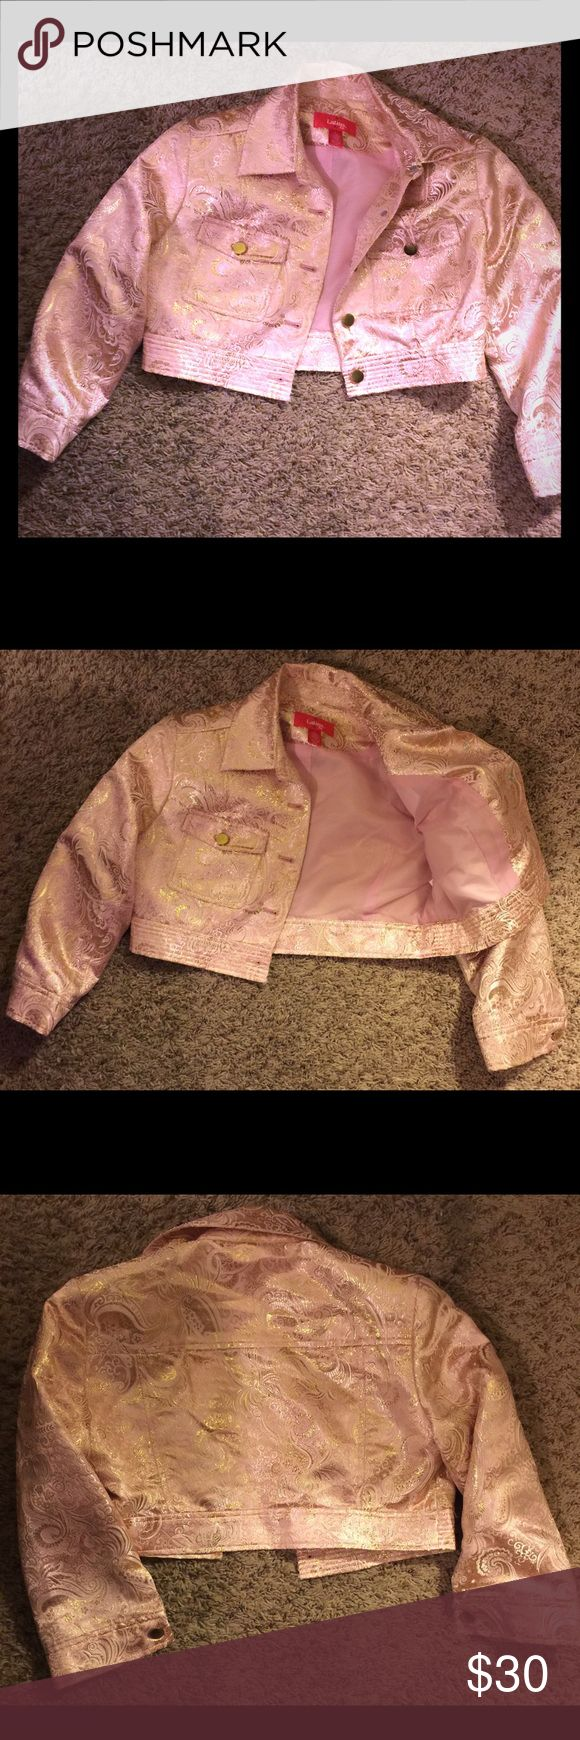 Cropped lovely pink jacket Lovely pink and gold accented cropped jacket. Lined in pale pink. Jackets & Coats Puffers